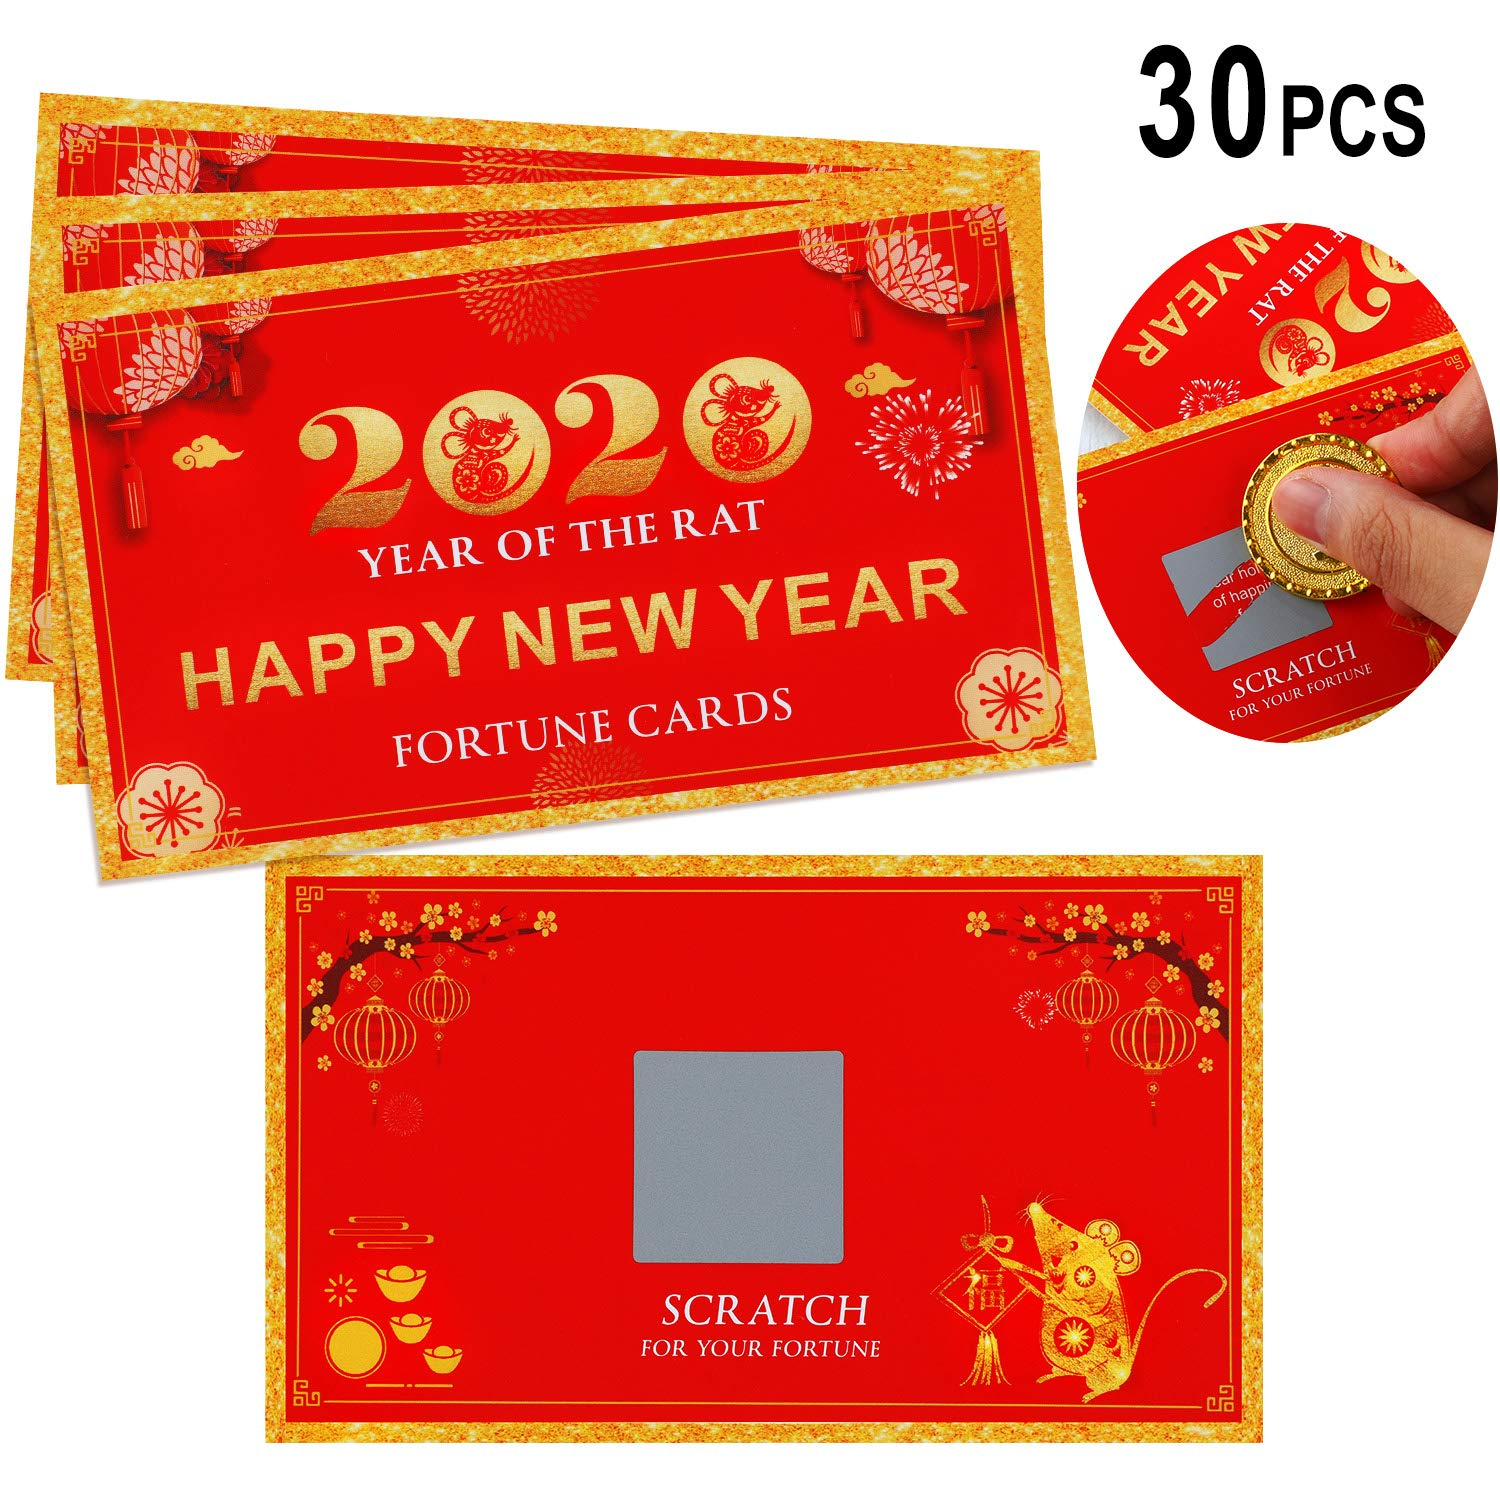 30 Pieces 2020 Chinese New Year Fortune Cards Scratch Off Fortune Cards Year of the Rat Cards for Spring Festival New Year Party Supplies